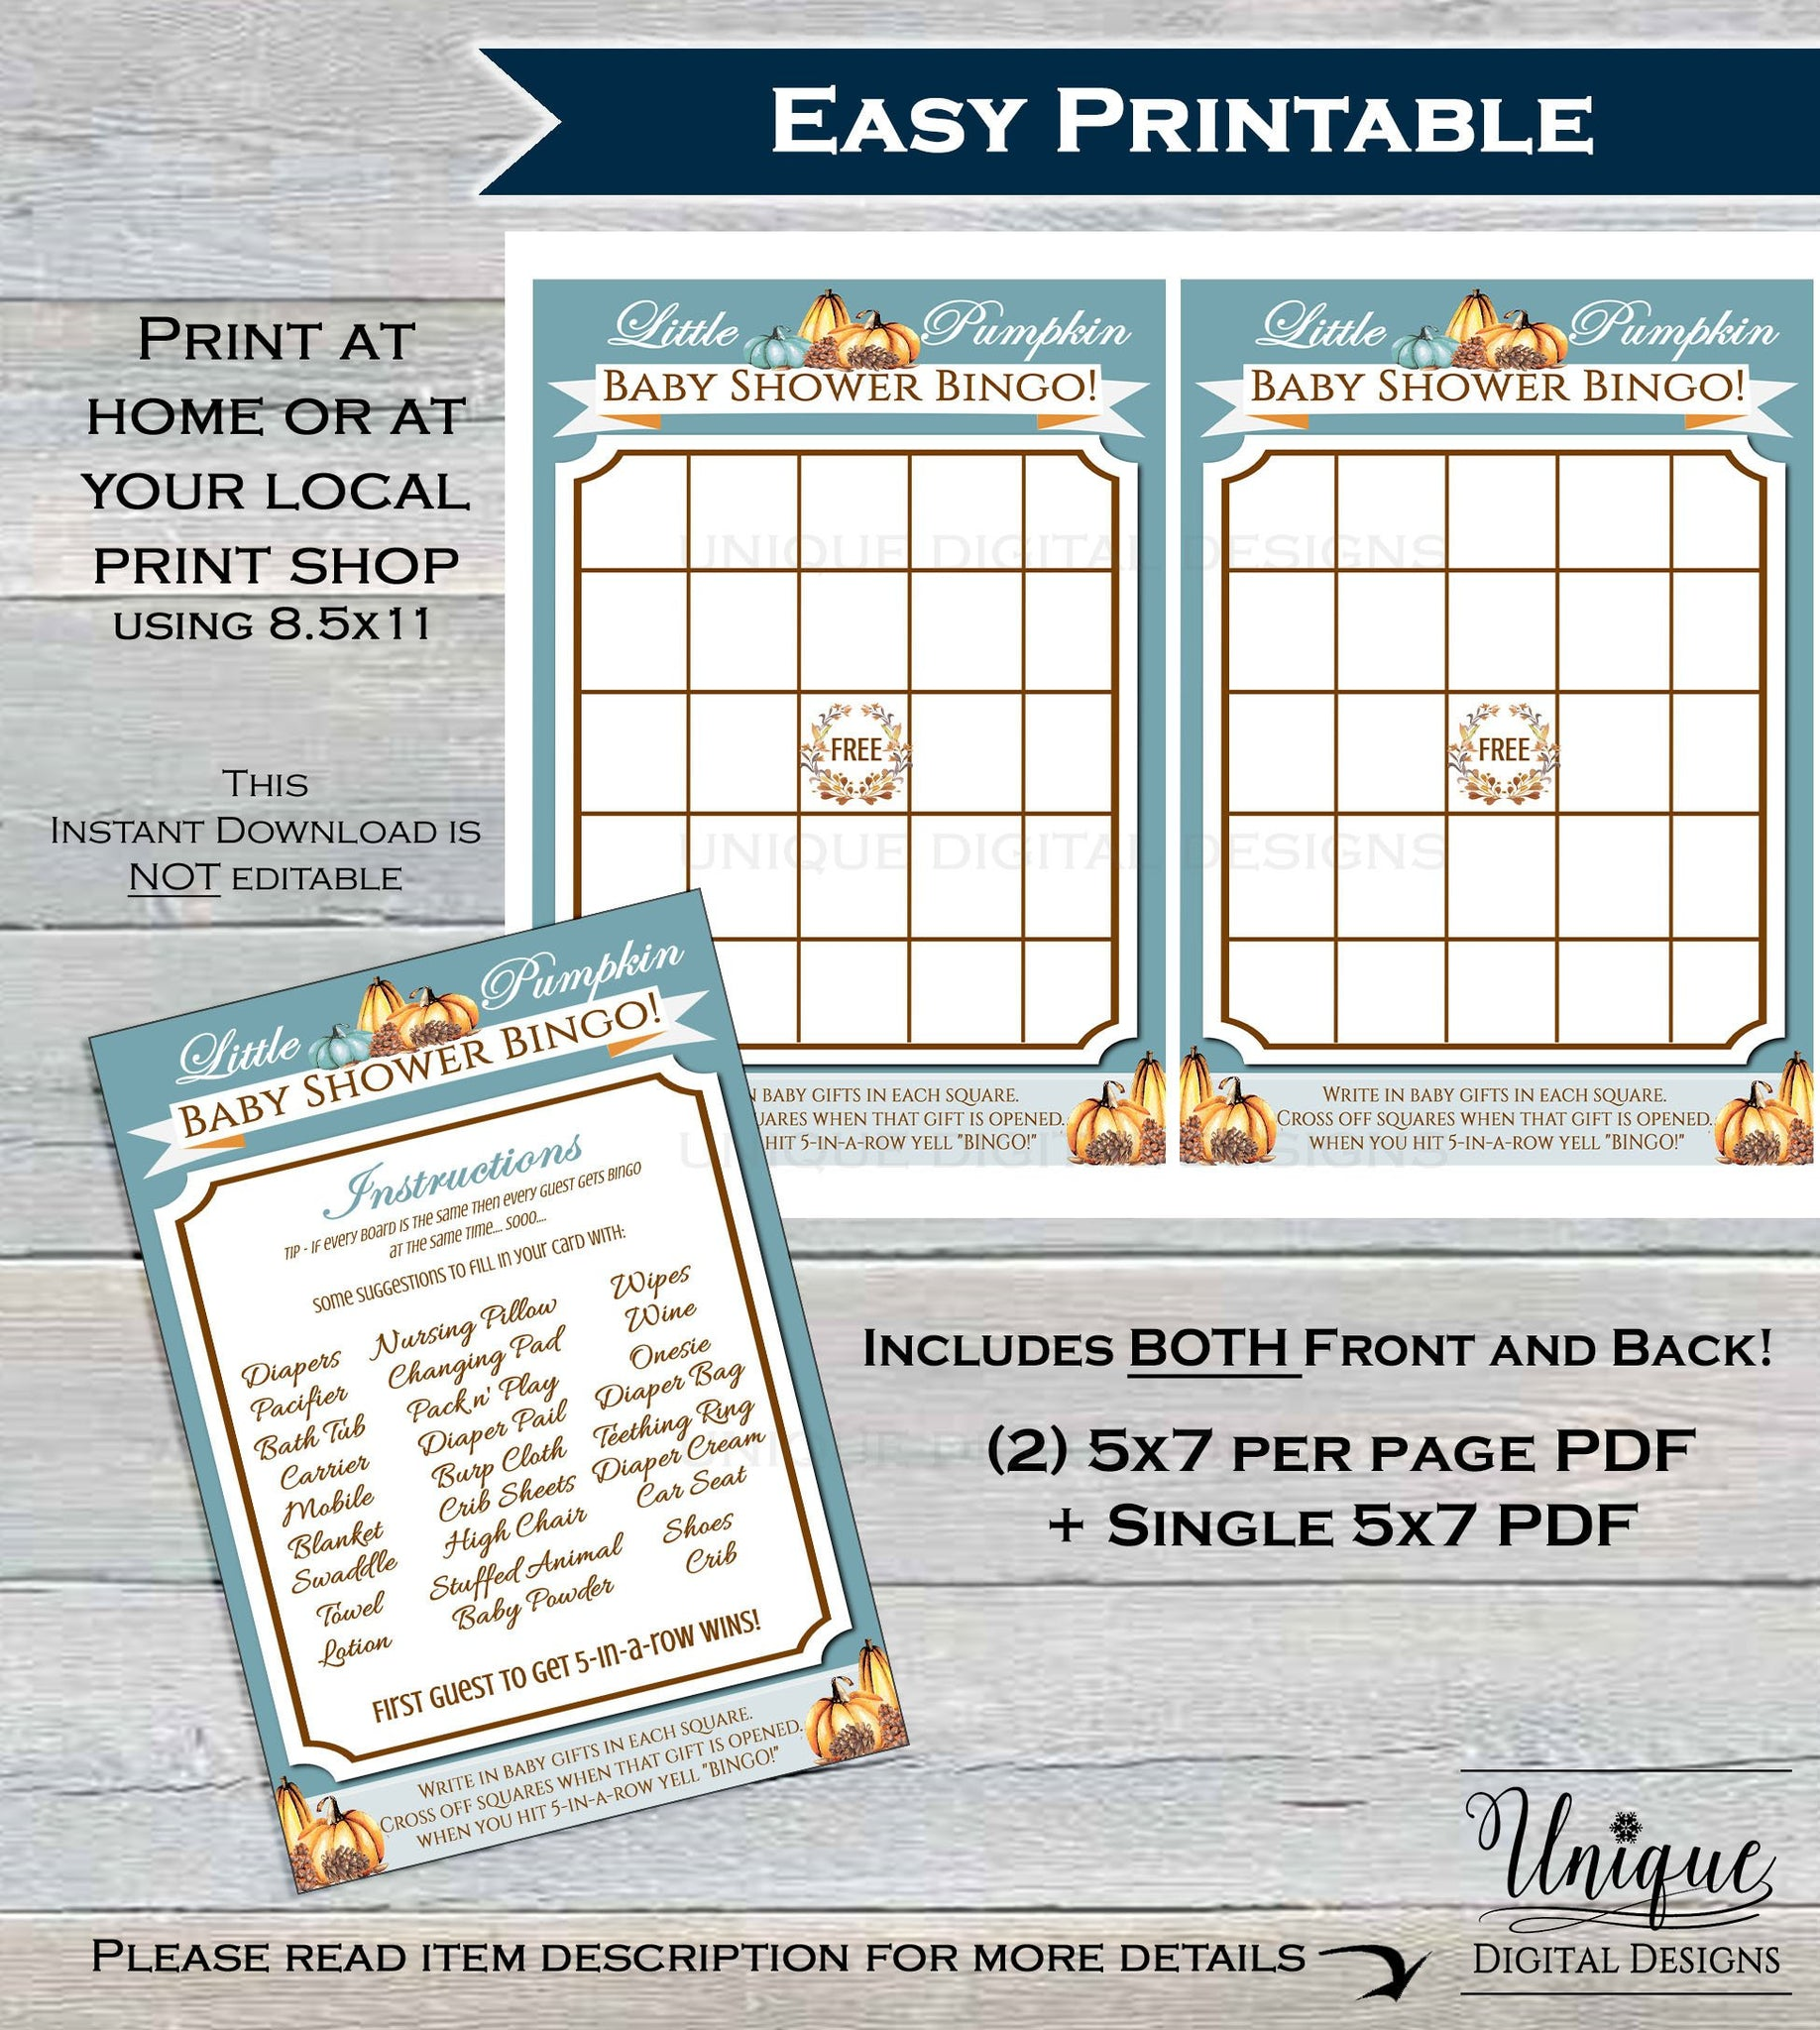 image about Printable Baby Shower Bingo identified as Little one Shower Bingo, Very little Pumpkin Kid Shower Online games, Bingo Printable, Kid Shower Recreation Board Little one, Blank Fill In just Customized Quick Down load 5x7